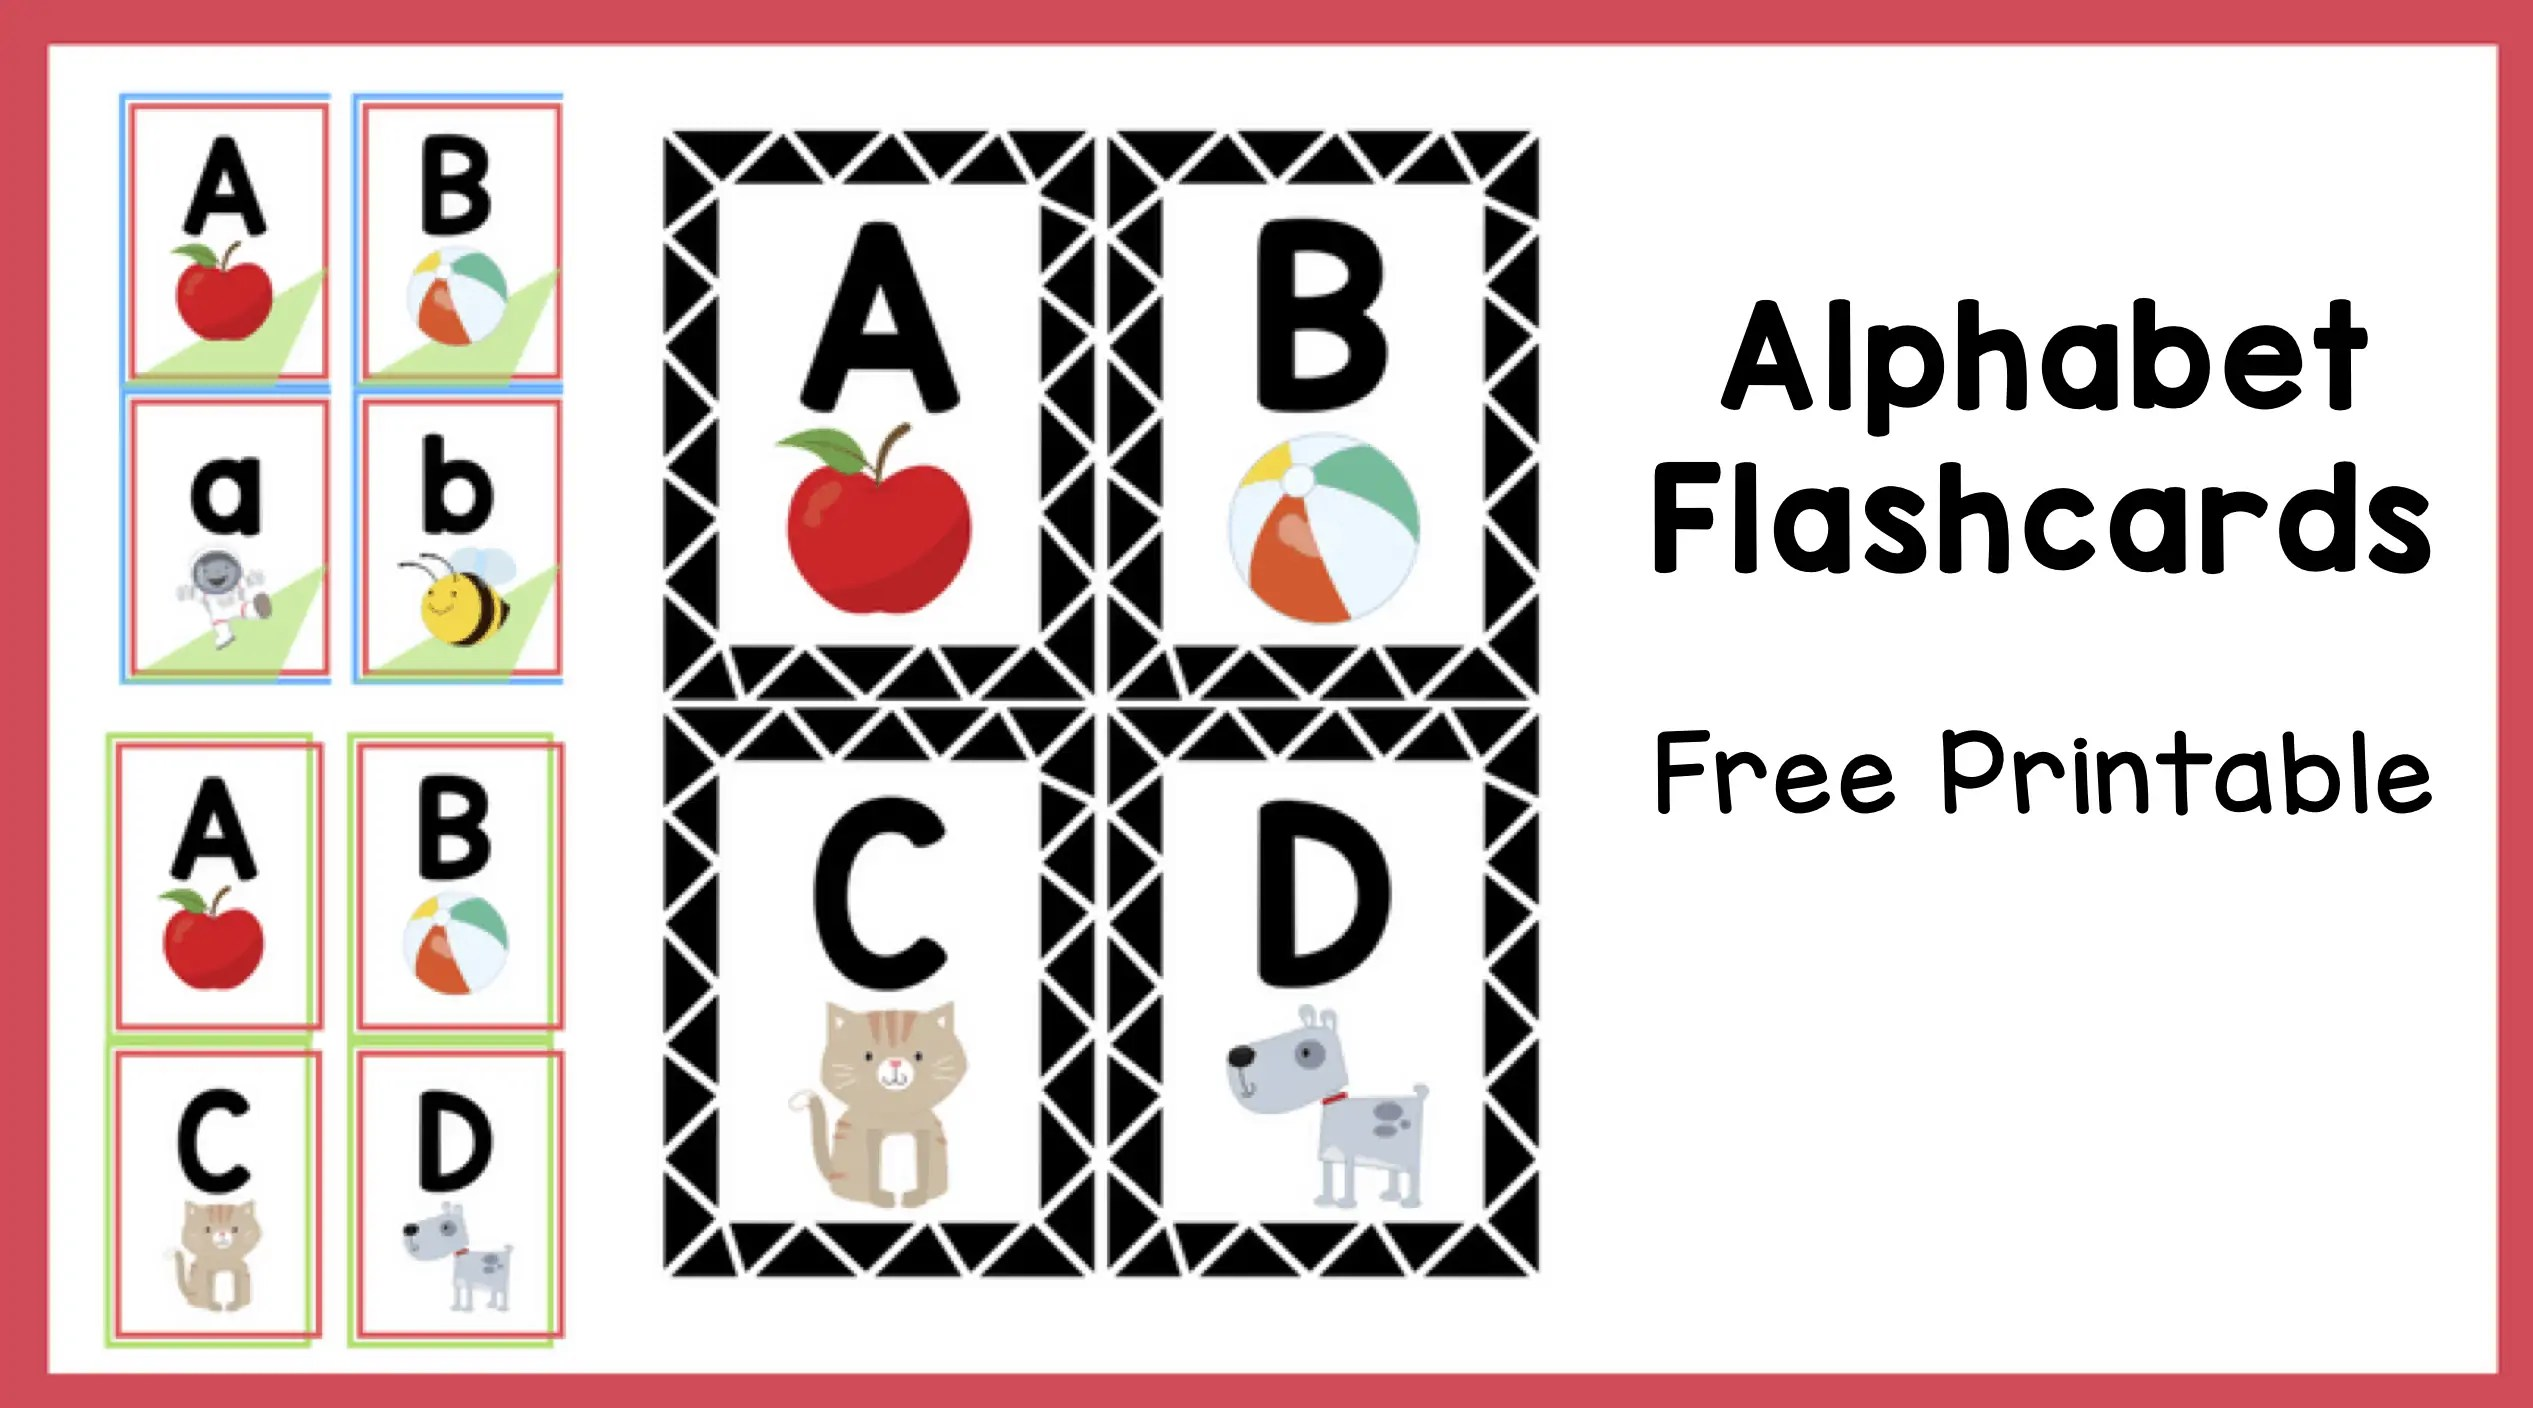 photo relating to Free Printable Abc Flashcards known as Alphabet Flashcards No cost Printable - The Coaching Aunt